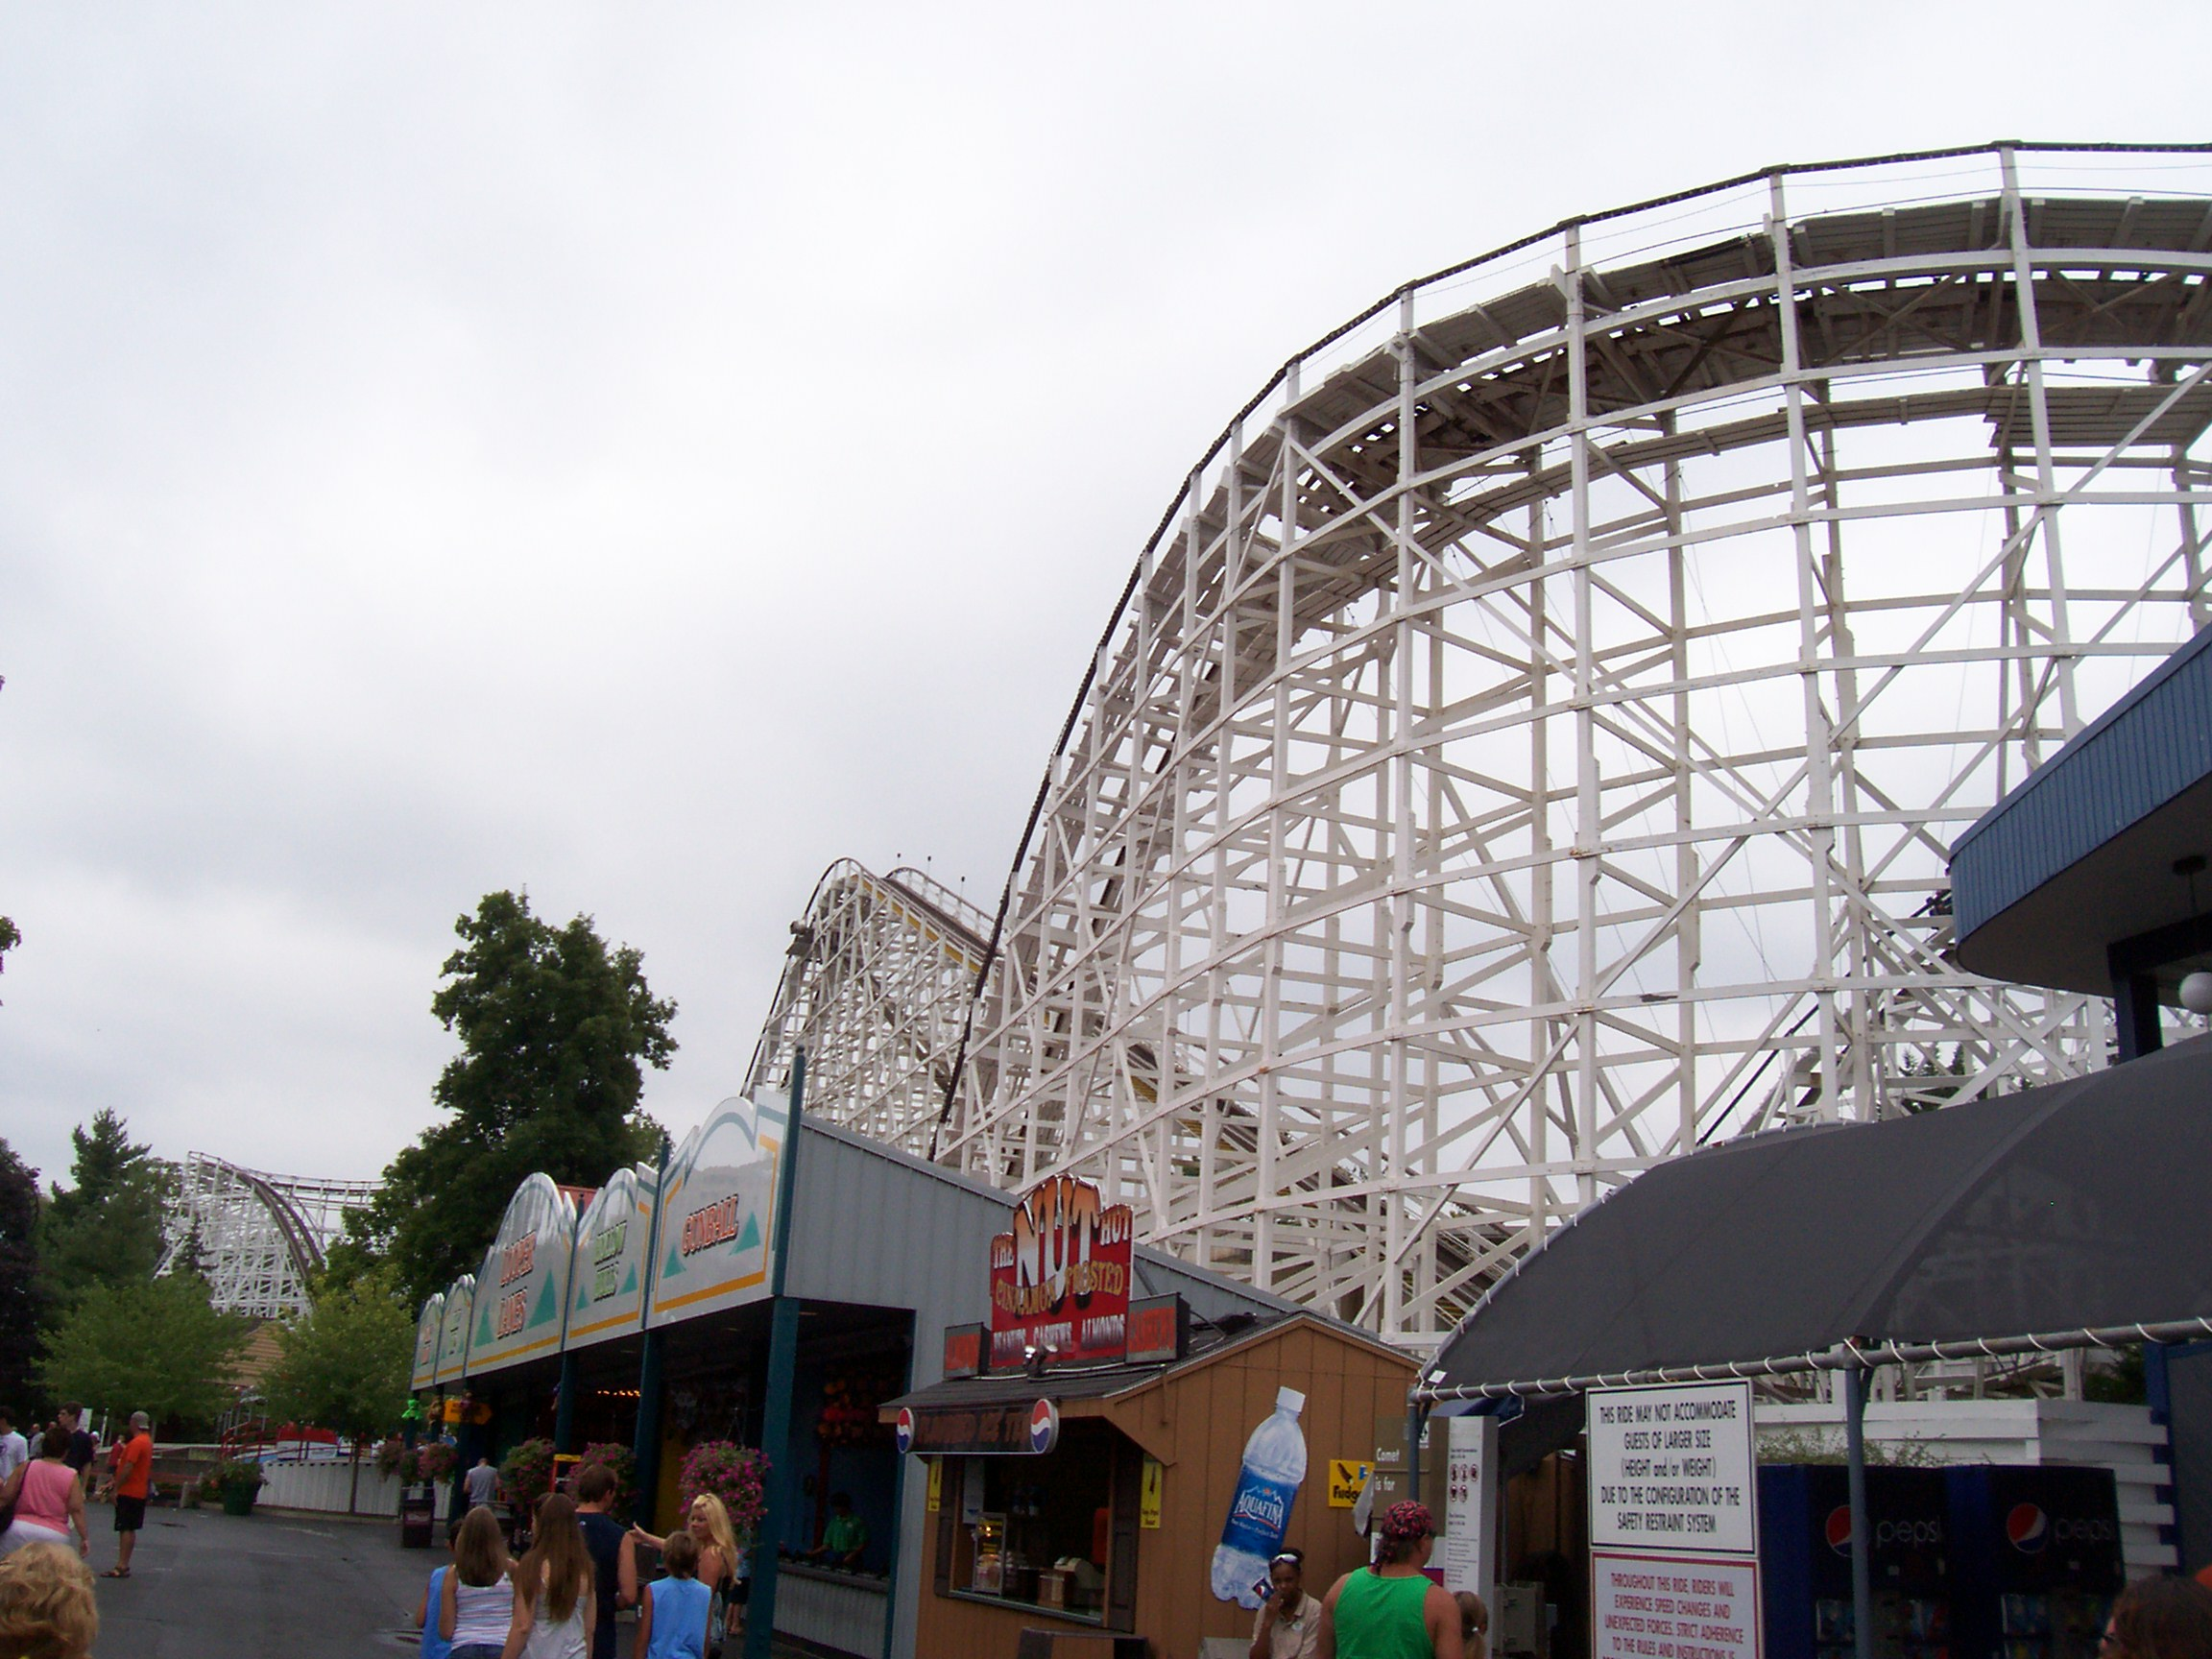 Riding the Roller Coaster  A blog devoted to theme parks and roller coasters